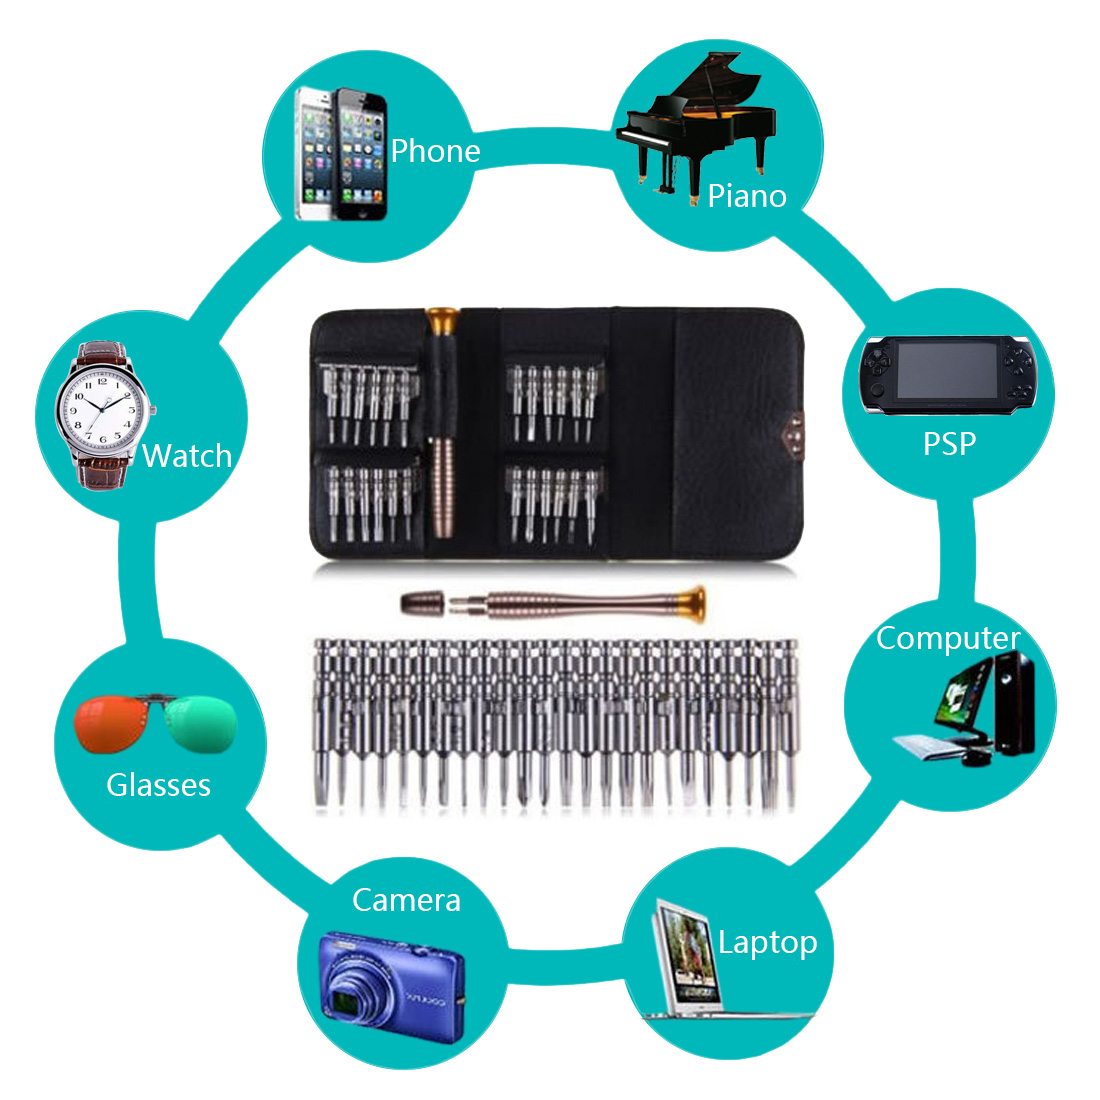 Screwdriver Wallet Kit 25 in 1 Repair Tools Screwdriver Set Precision Screwdriver Hand Tool Sets for PC Camera Watch Opening